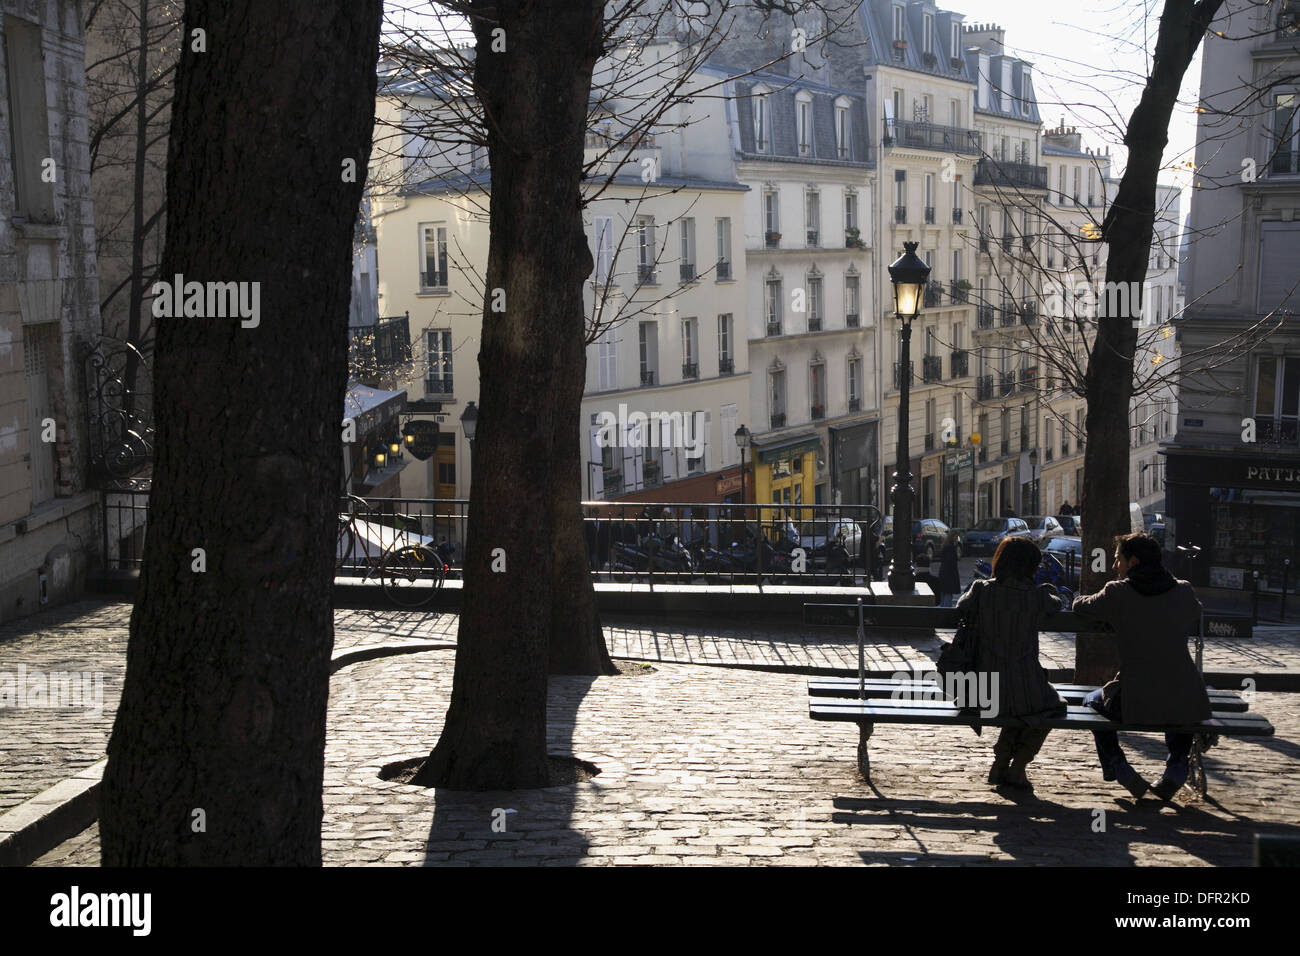 street view of montmartre paris france stock photo royalty free image 61357953 alamy. Black Bedroom Furniture Sets. Home Design Ideas